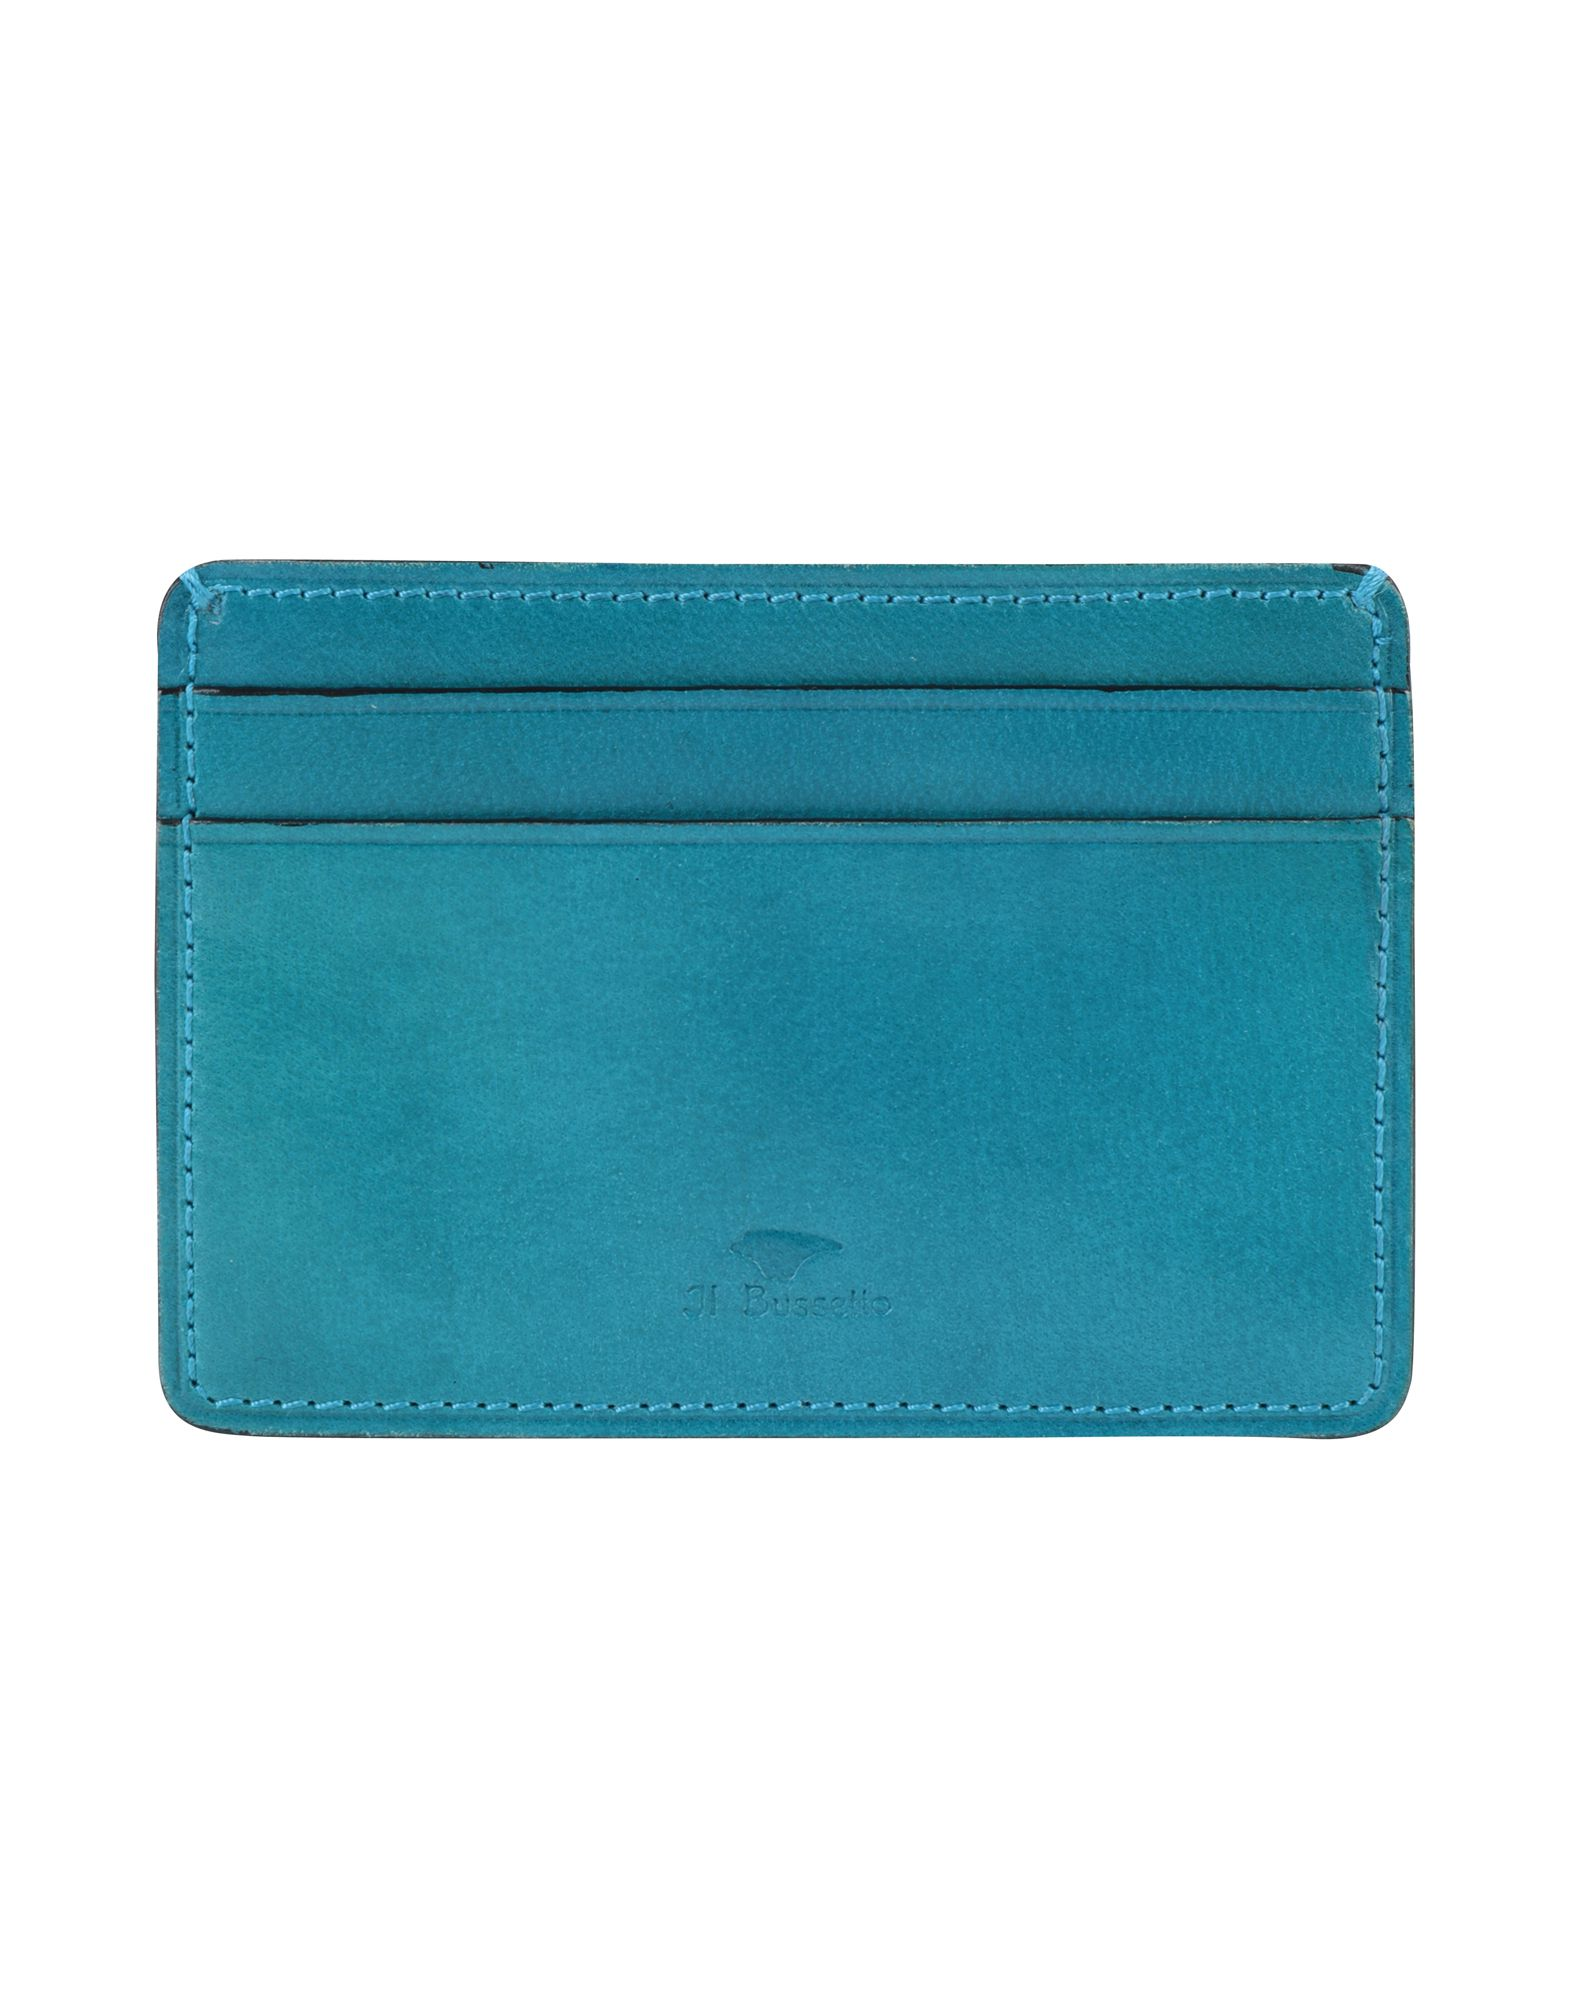 IL BUSSETTO Document Holder in Turquoise